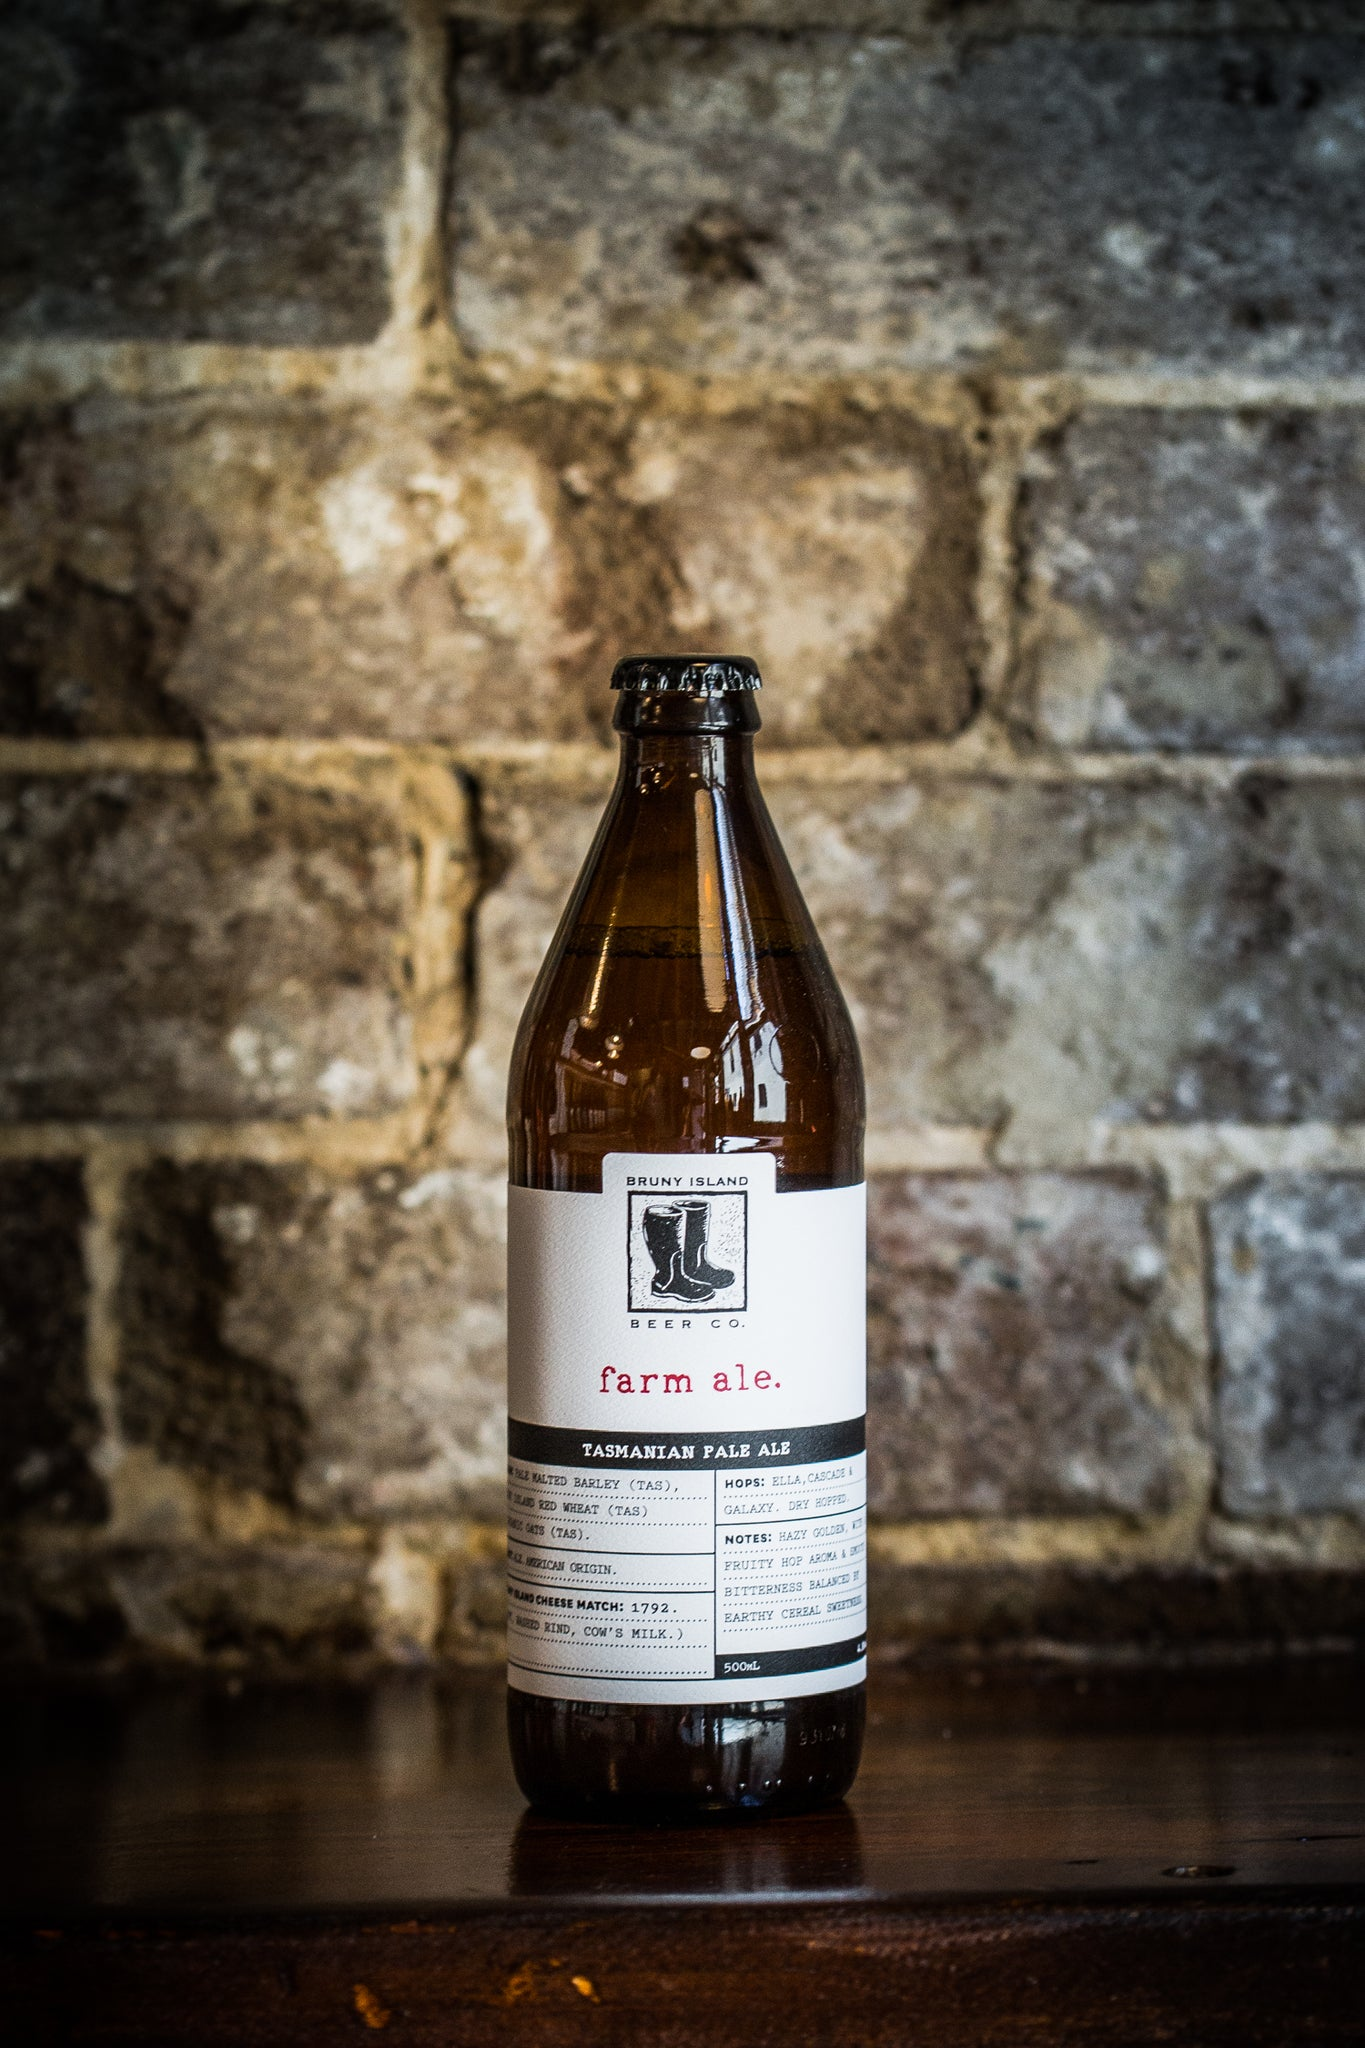 Bruny Island Beer Co. Farm Ale 500ml